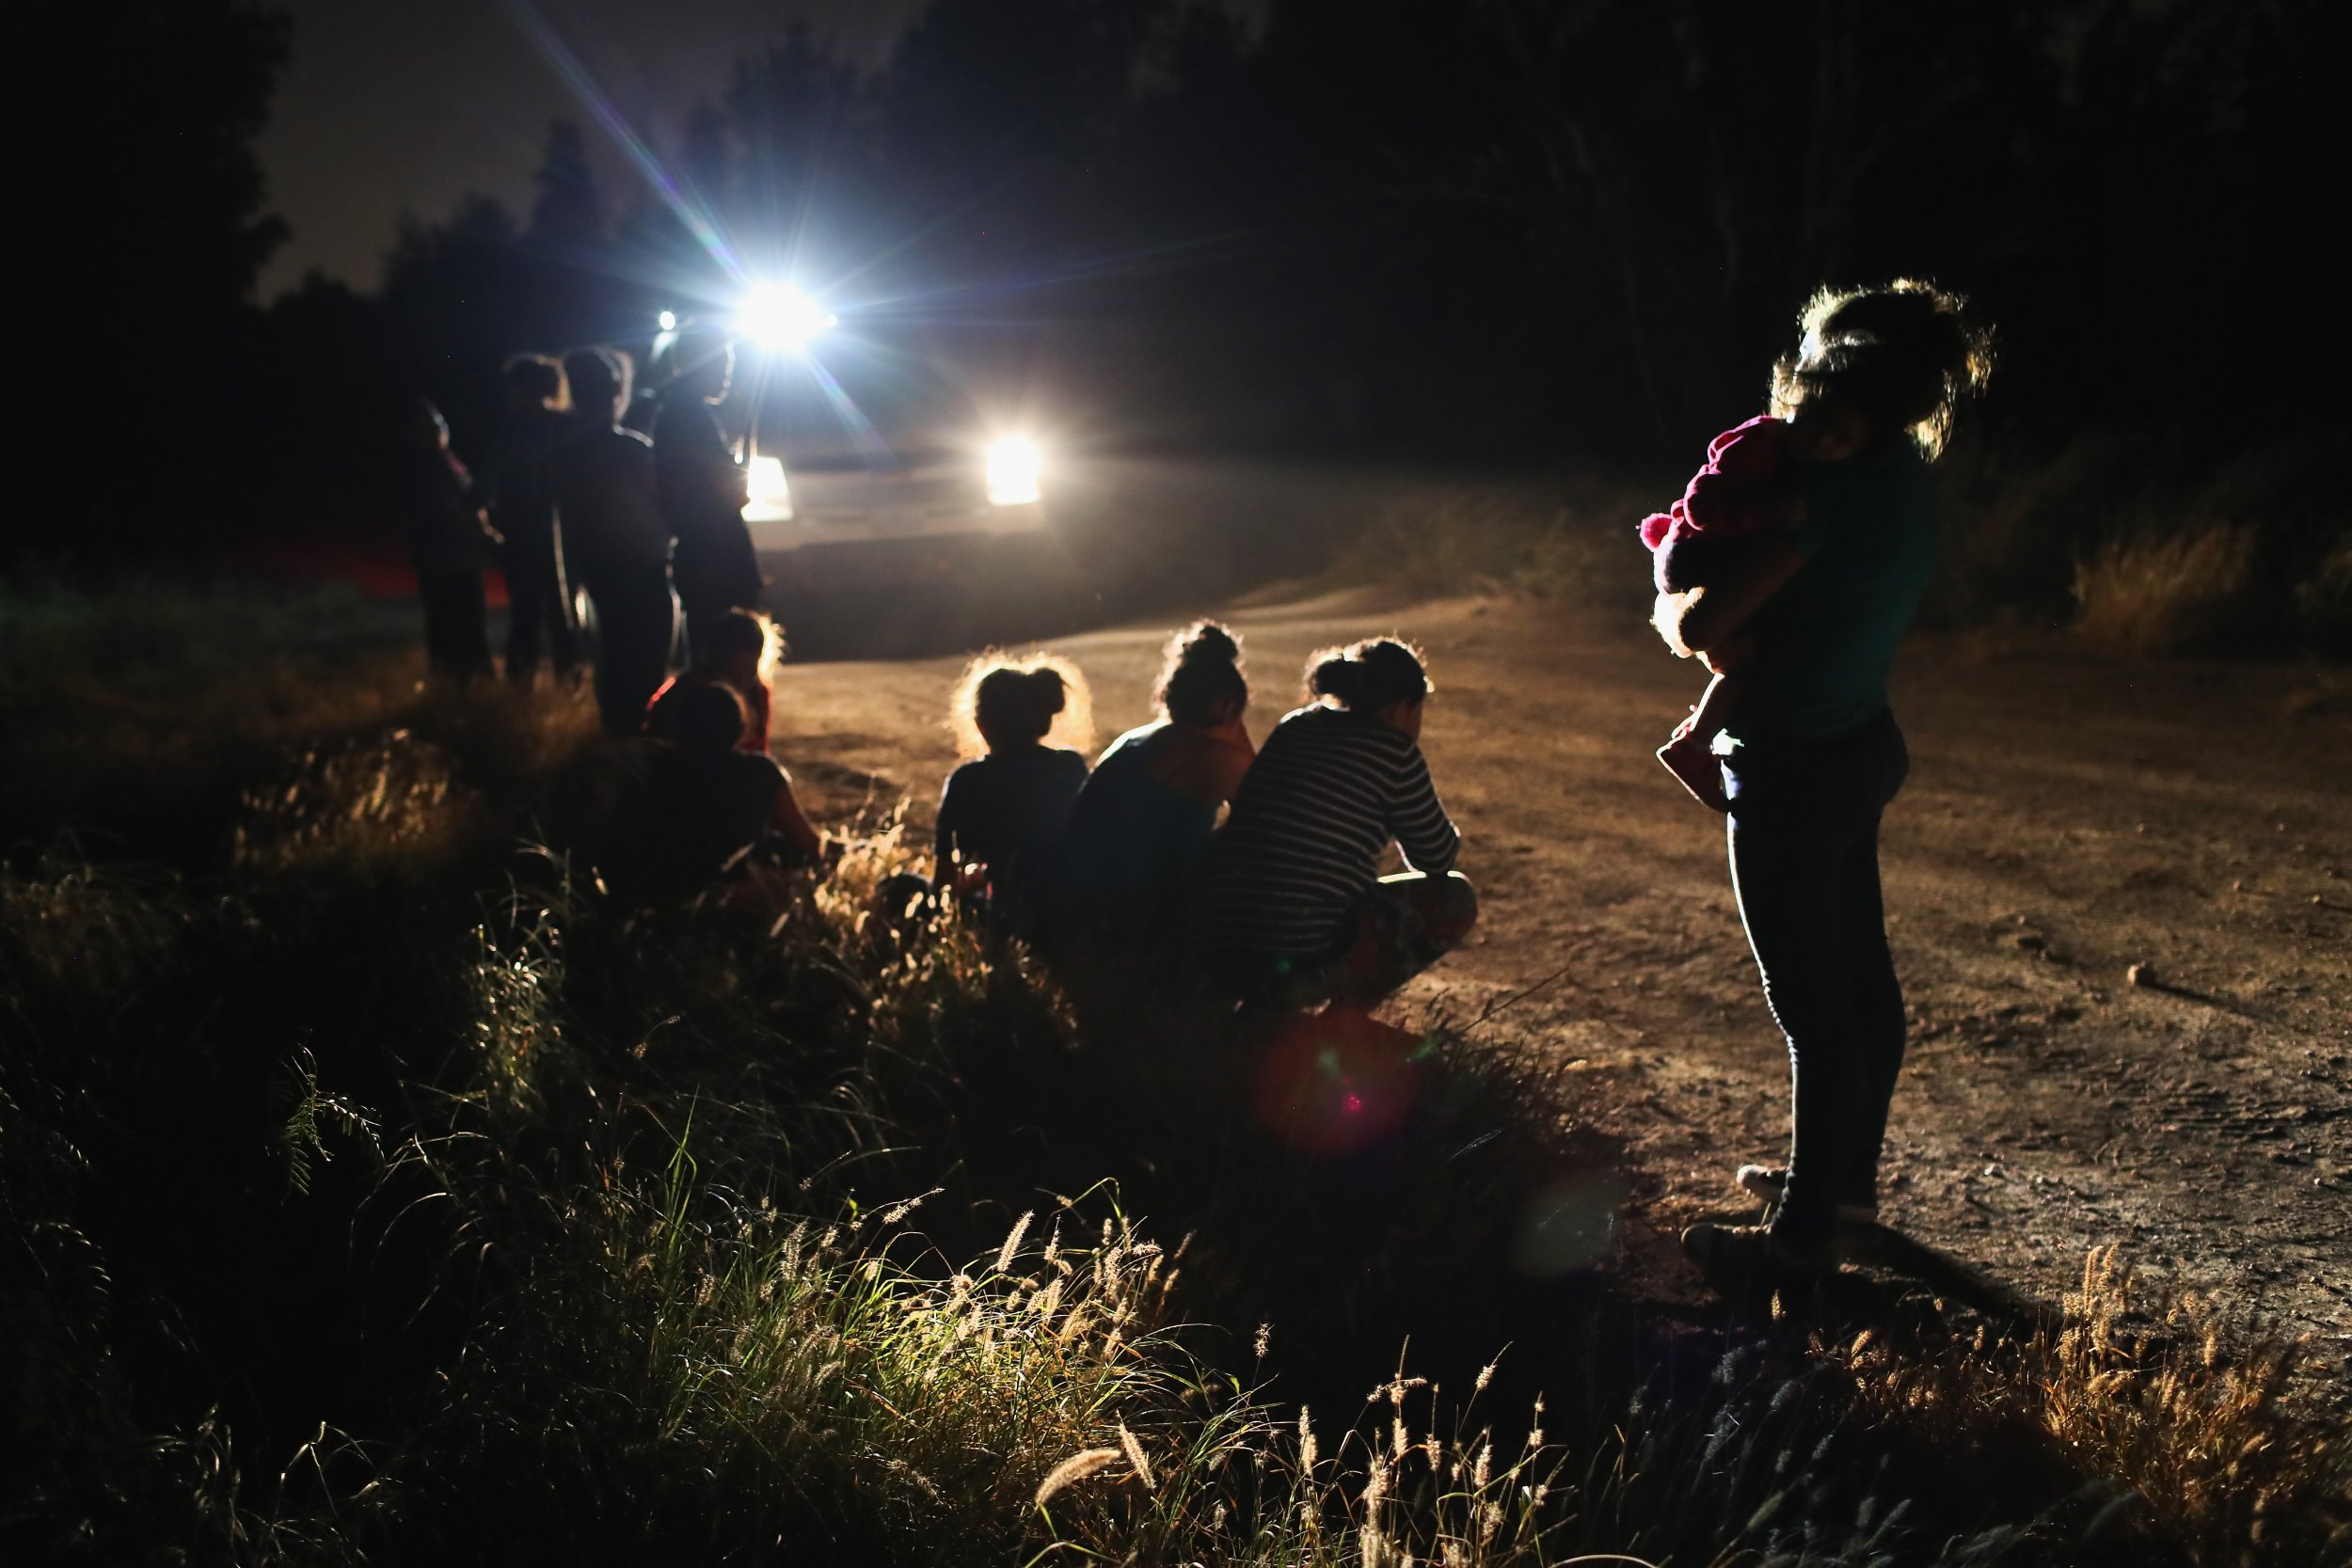 Homeland Security Government Watchdog to Investigate Child Migrant's Death